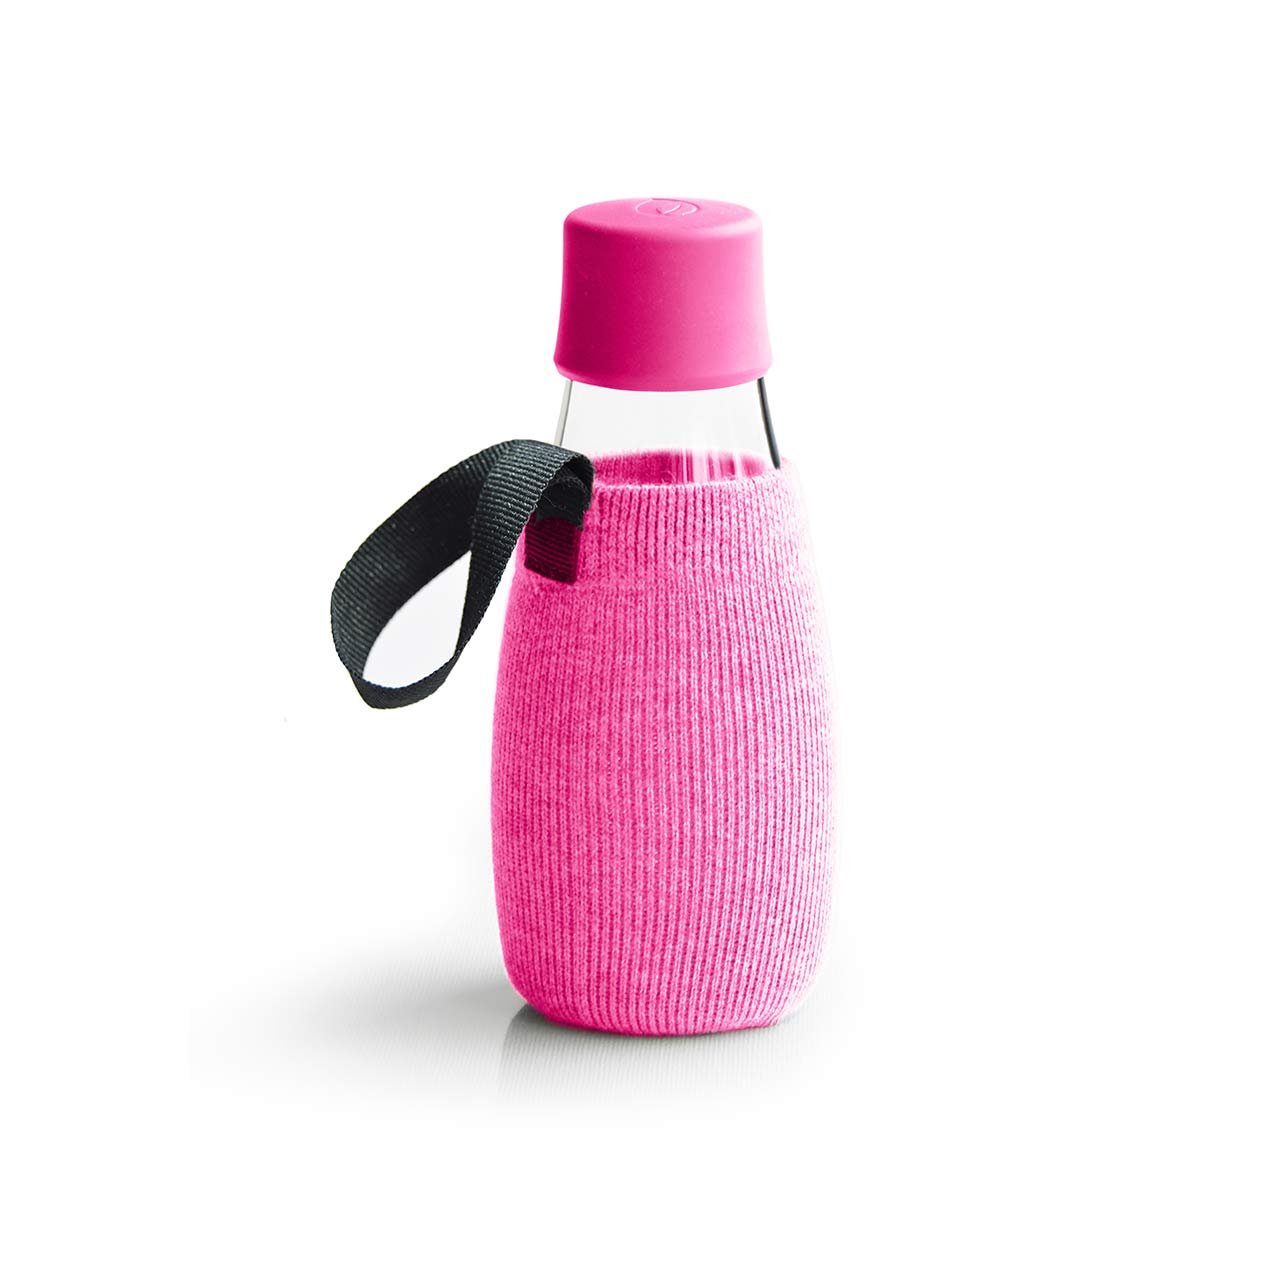 Retap Glass Water Bottle 03 | Lid & Sleeve Pink | The Design Gift Shop